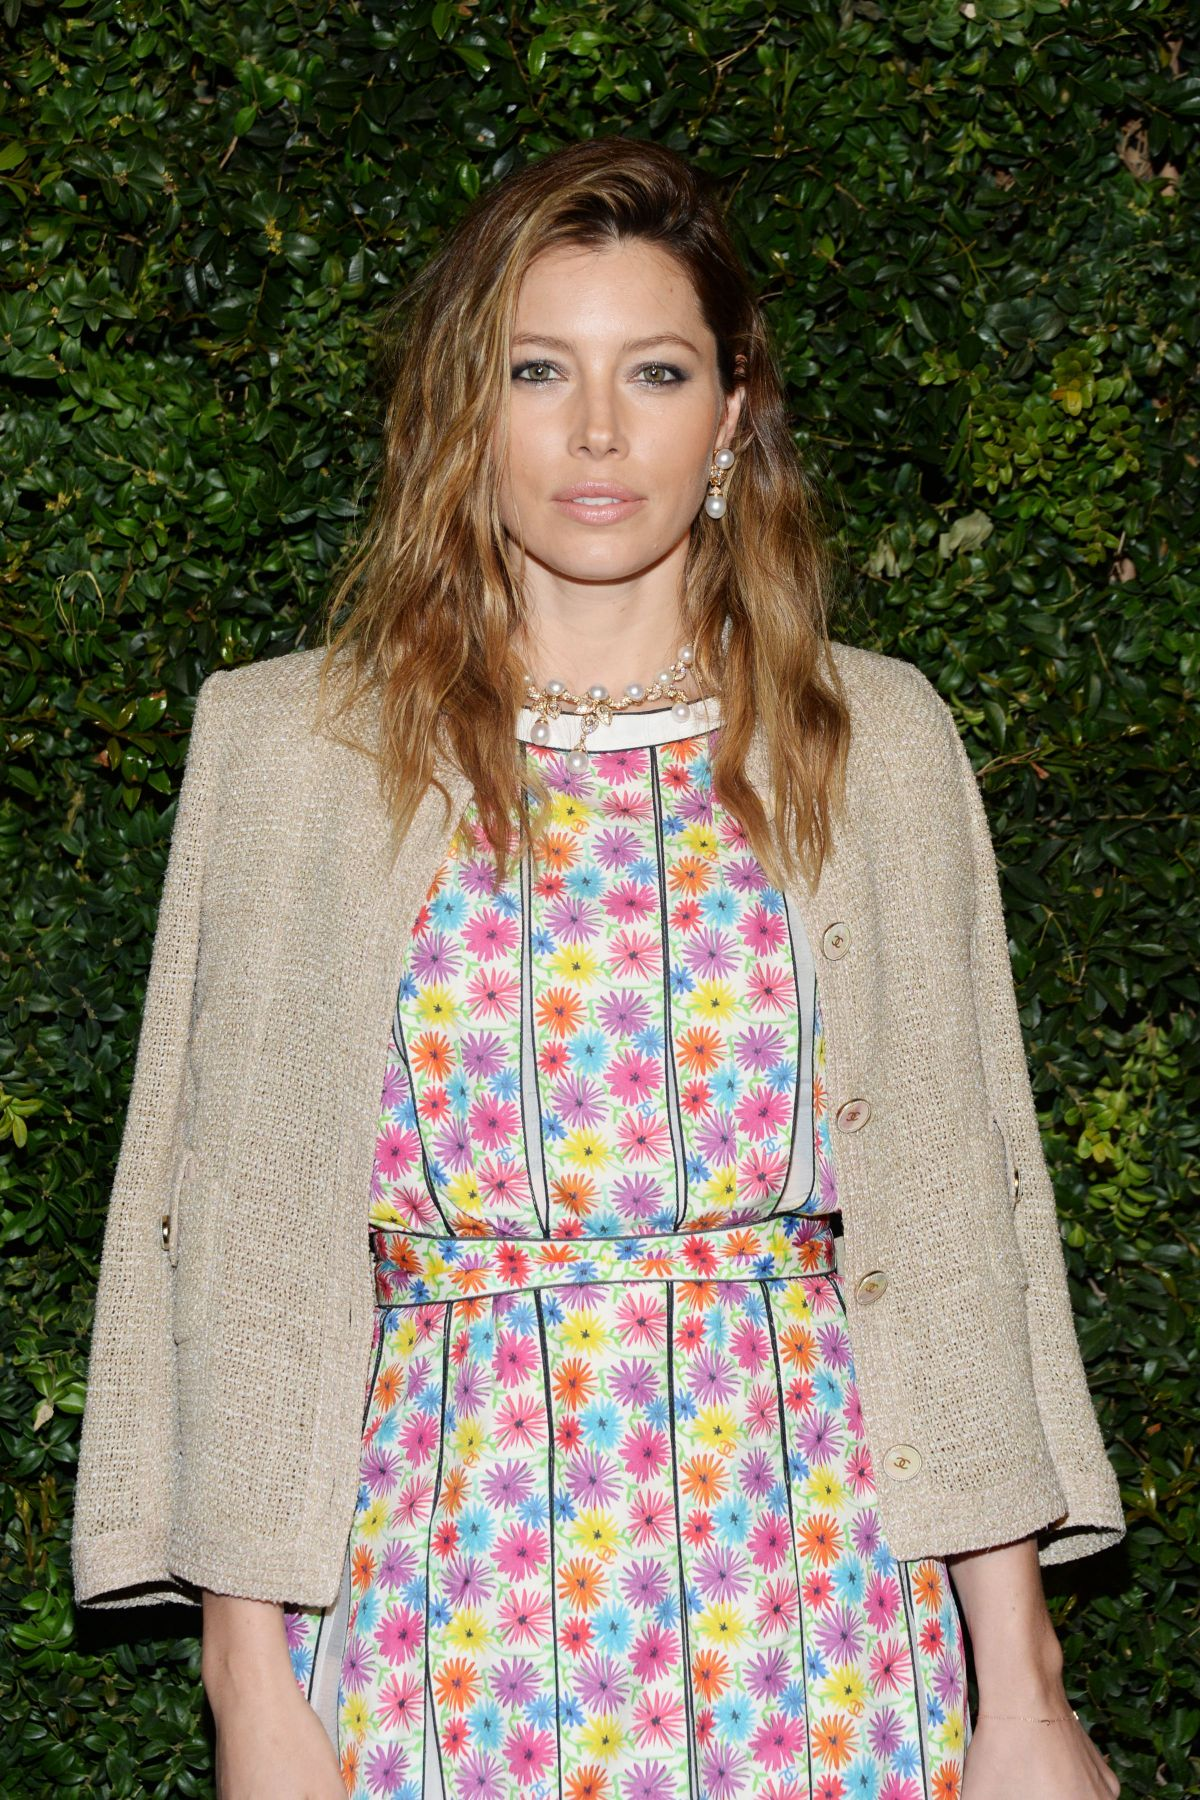 JESSICA BIEL at Chanel and Charles Finch Pre-oscar Party in Los Angeles 02/27/2016